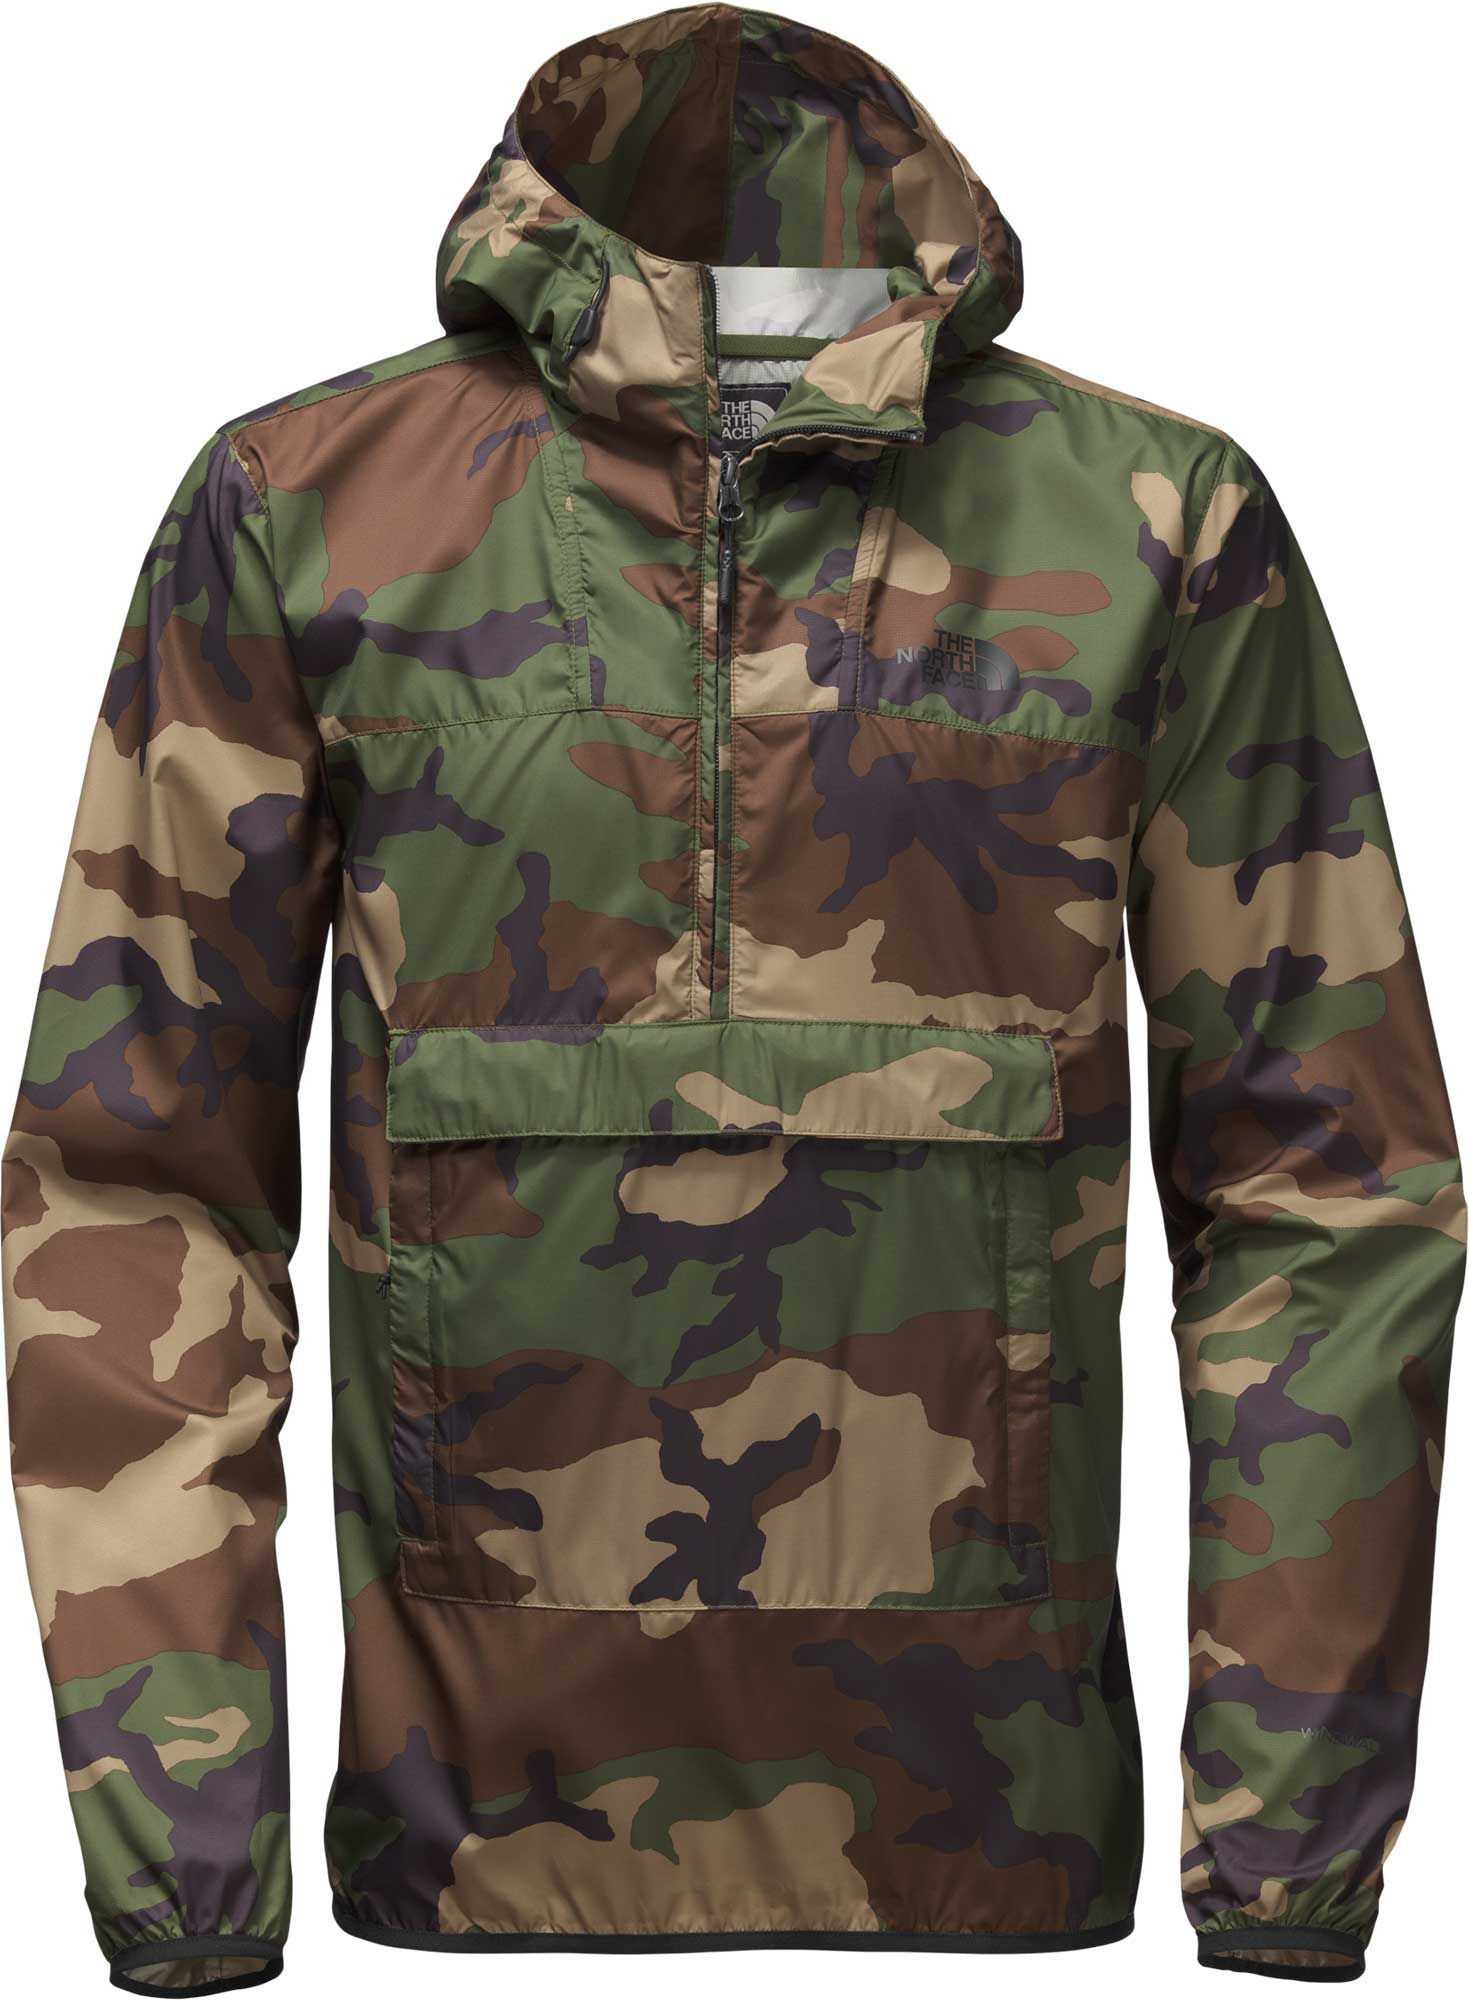 2342abf1b The North Face Men's Fanorak Pullover Jacket | Products | Camo ...